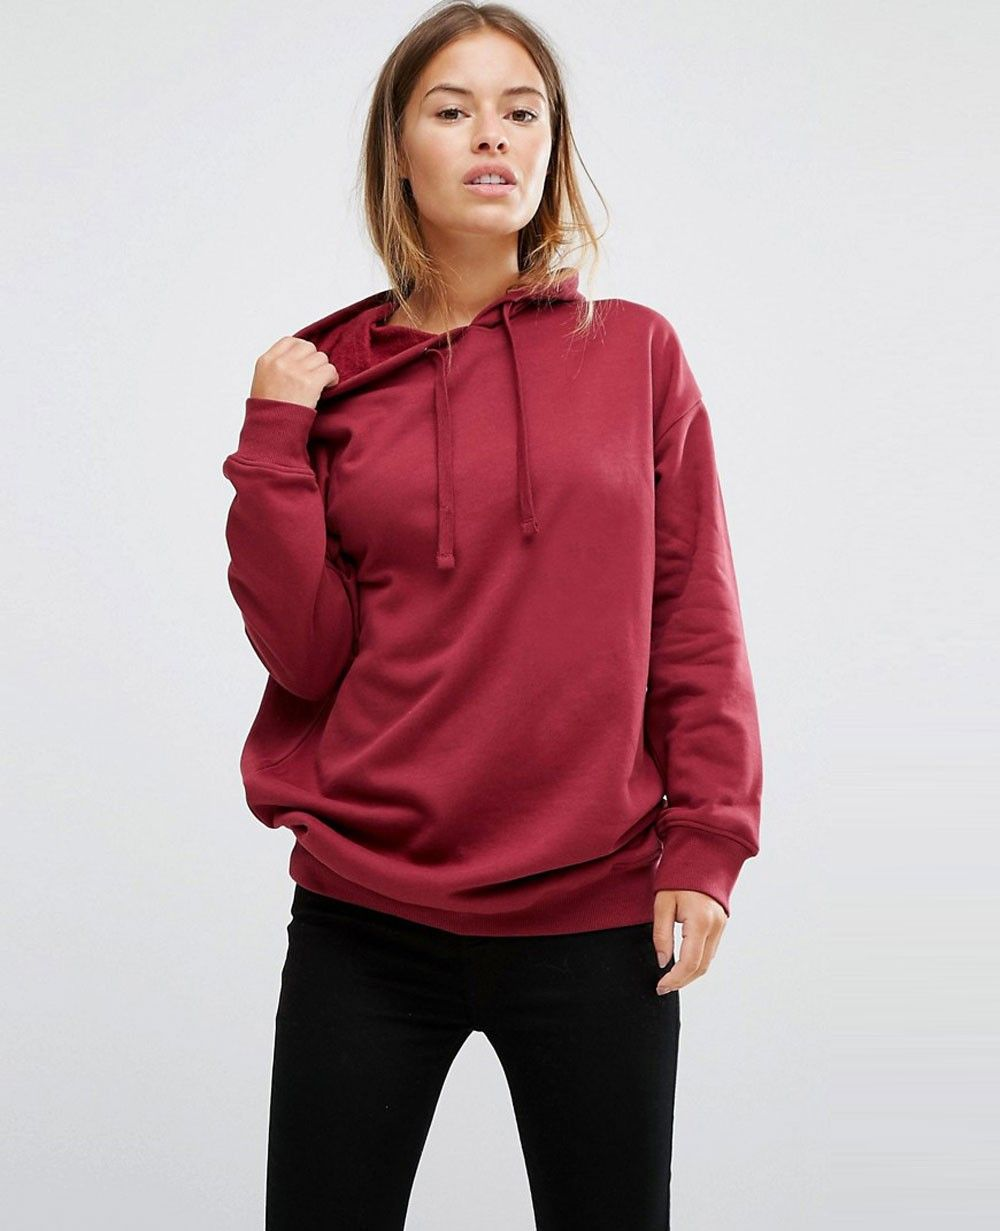 http://www.quickapparels.com/ultimate-oversized-pullover-women ...